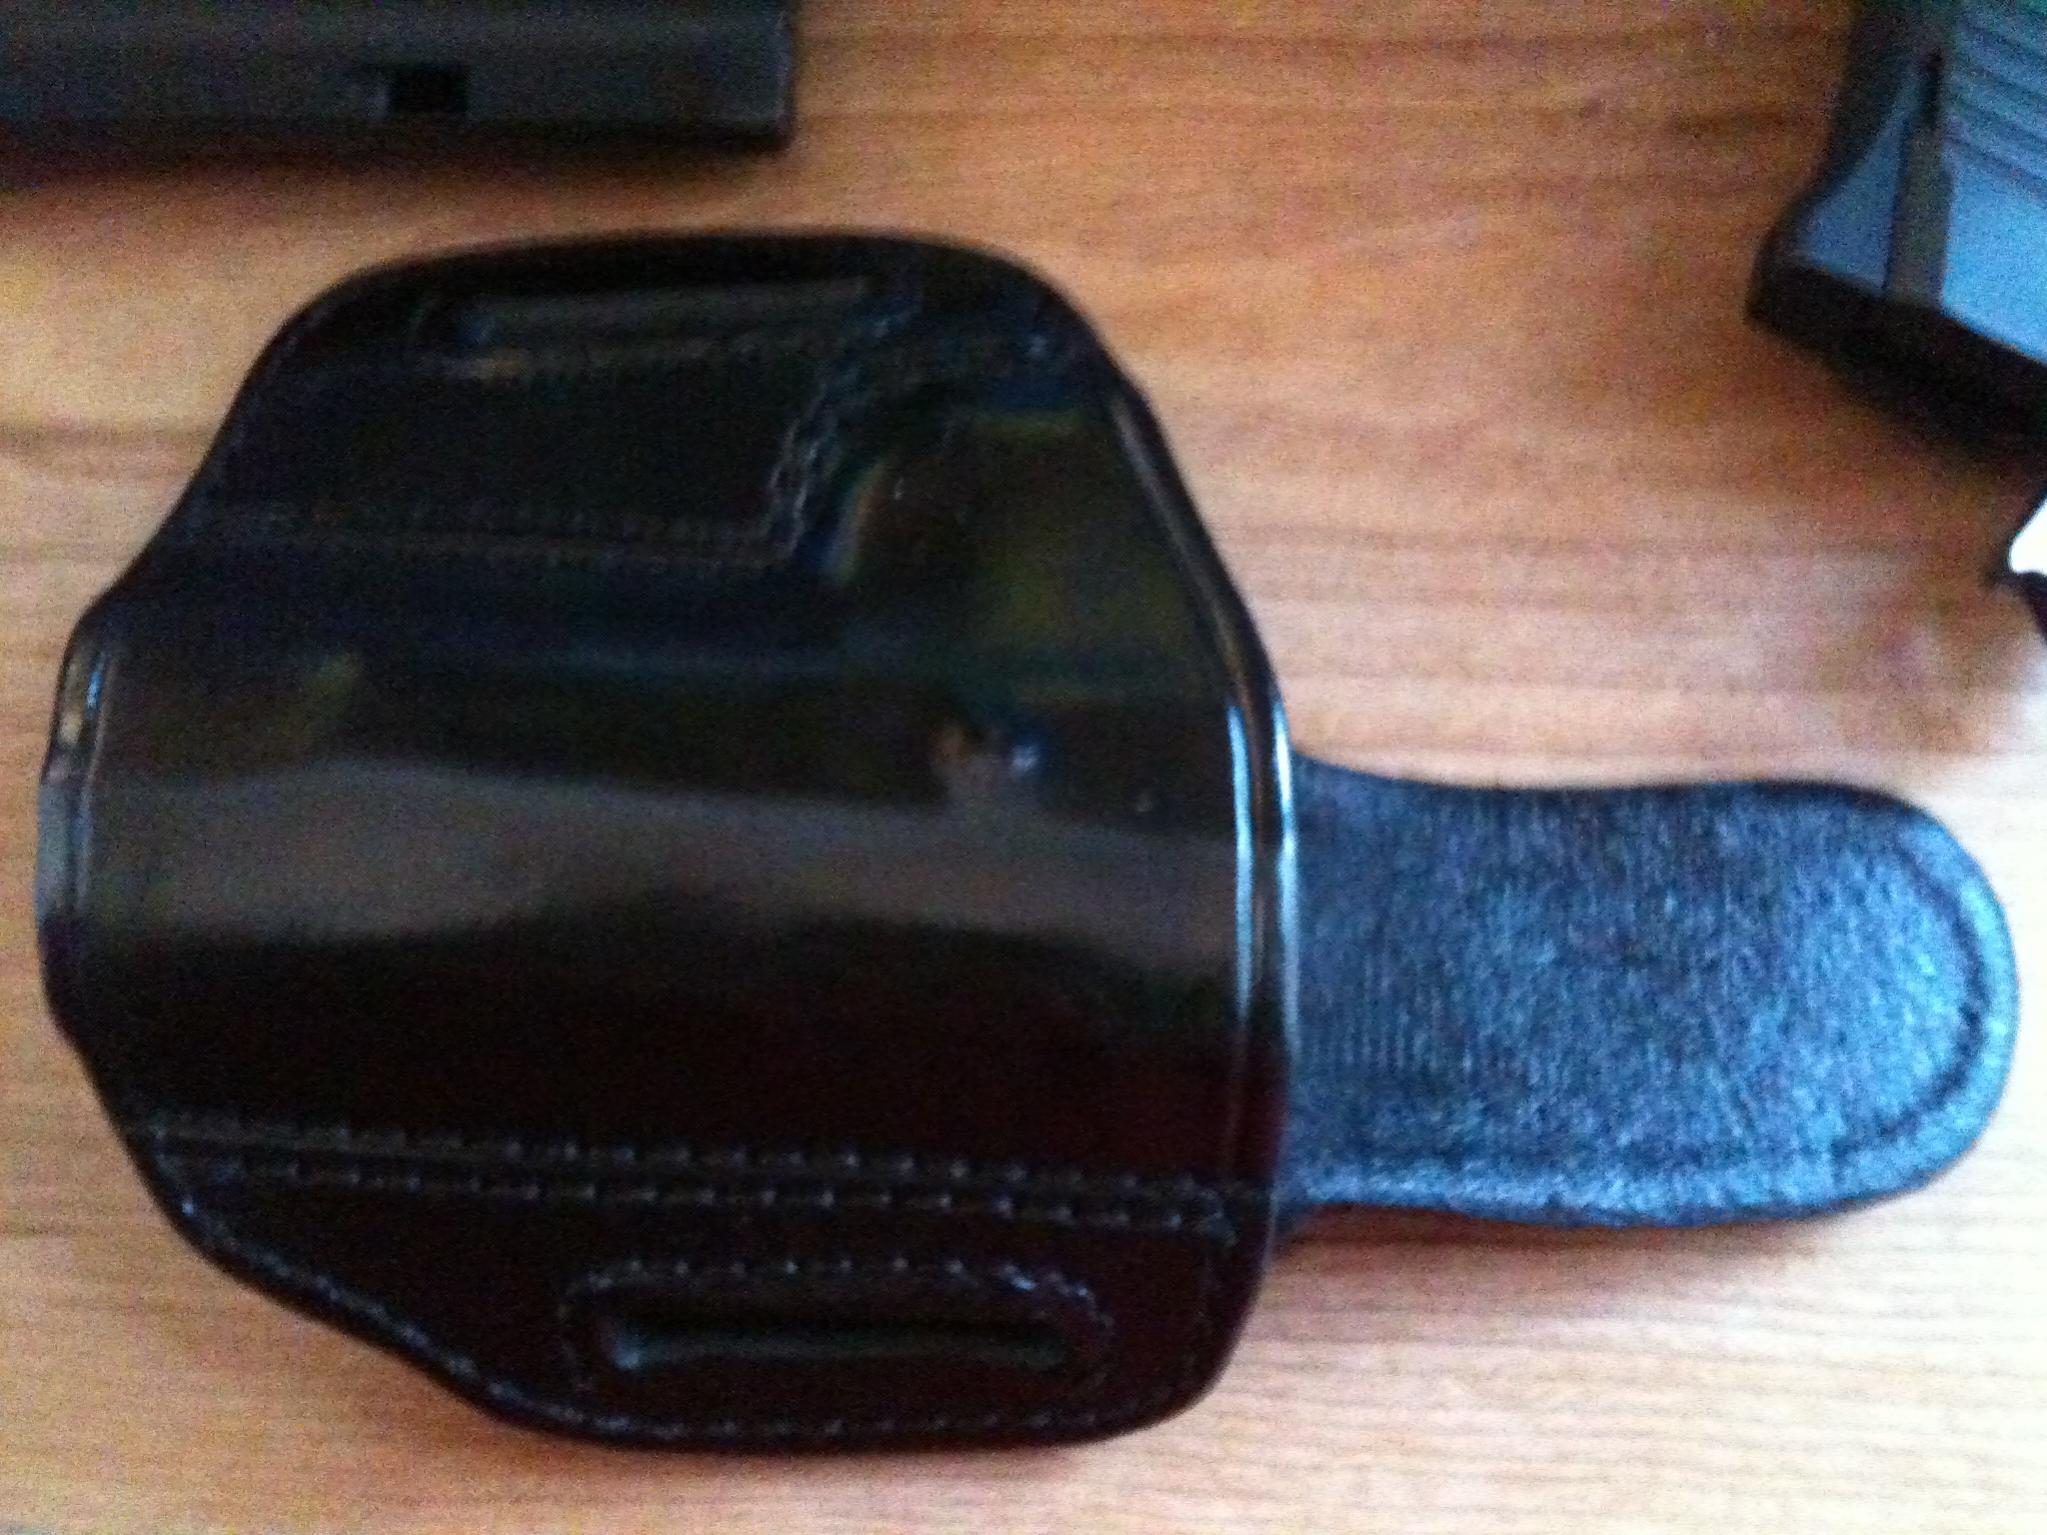 Don Hume 721OT and Aker Gun Belt (low budget carry bliss)-img_1039-1-.jpg